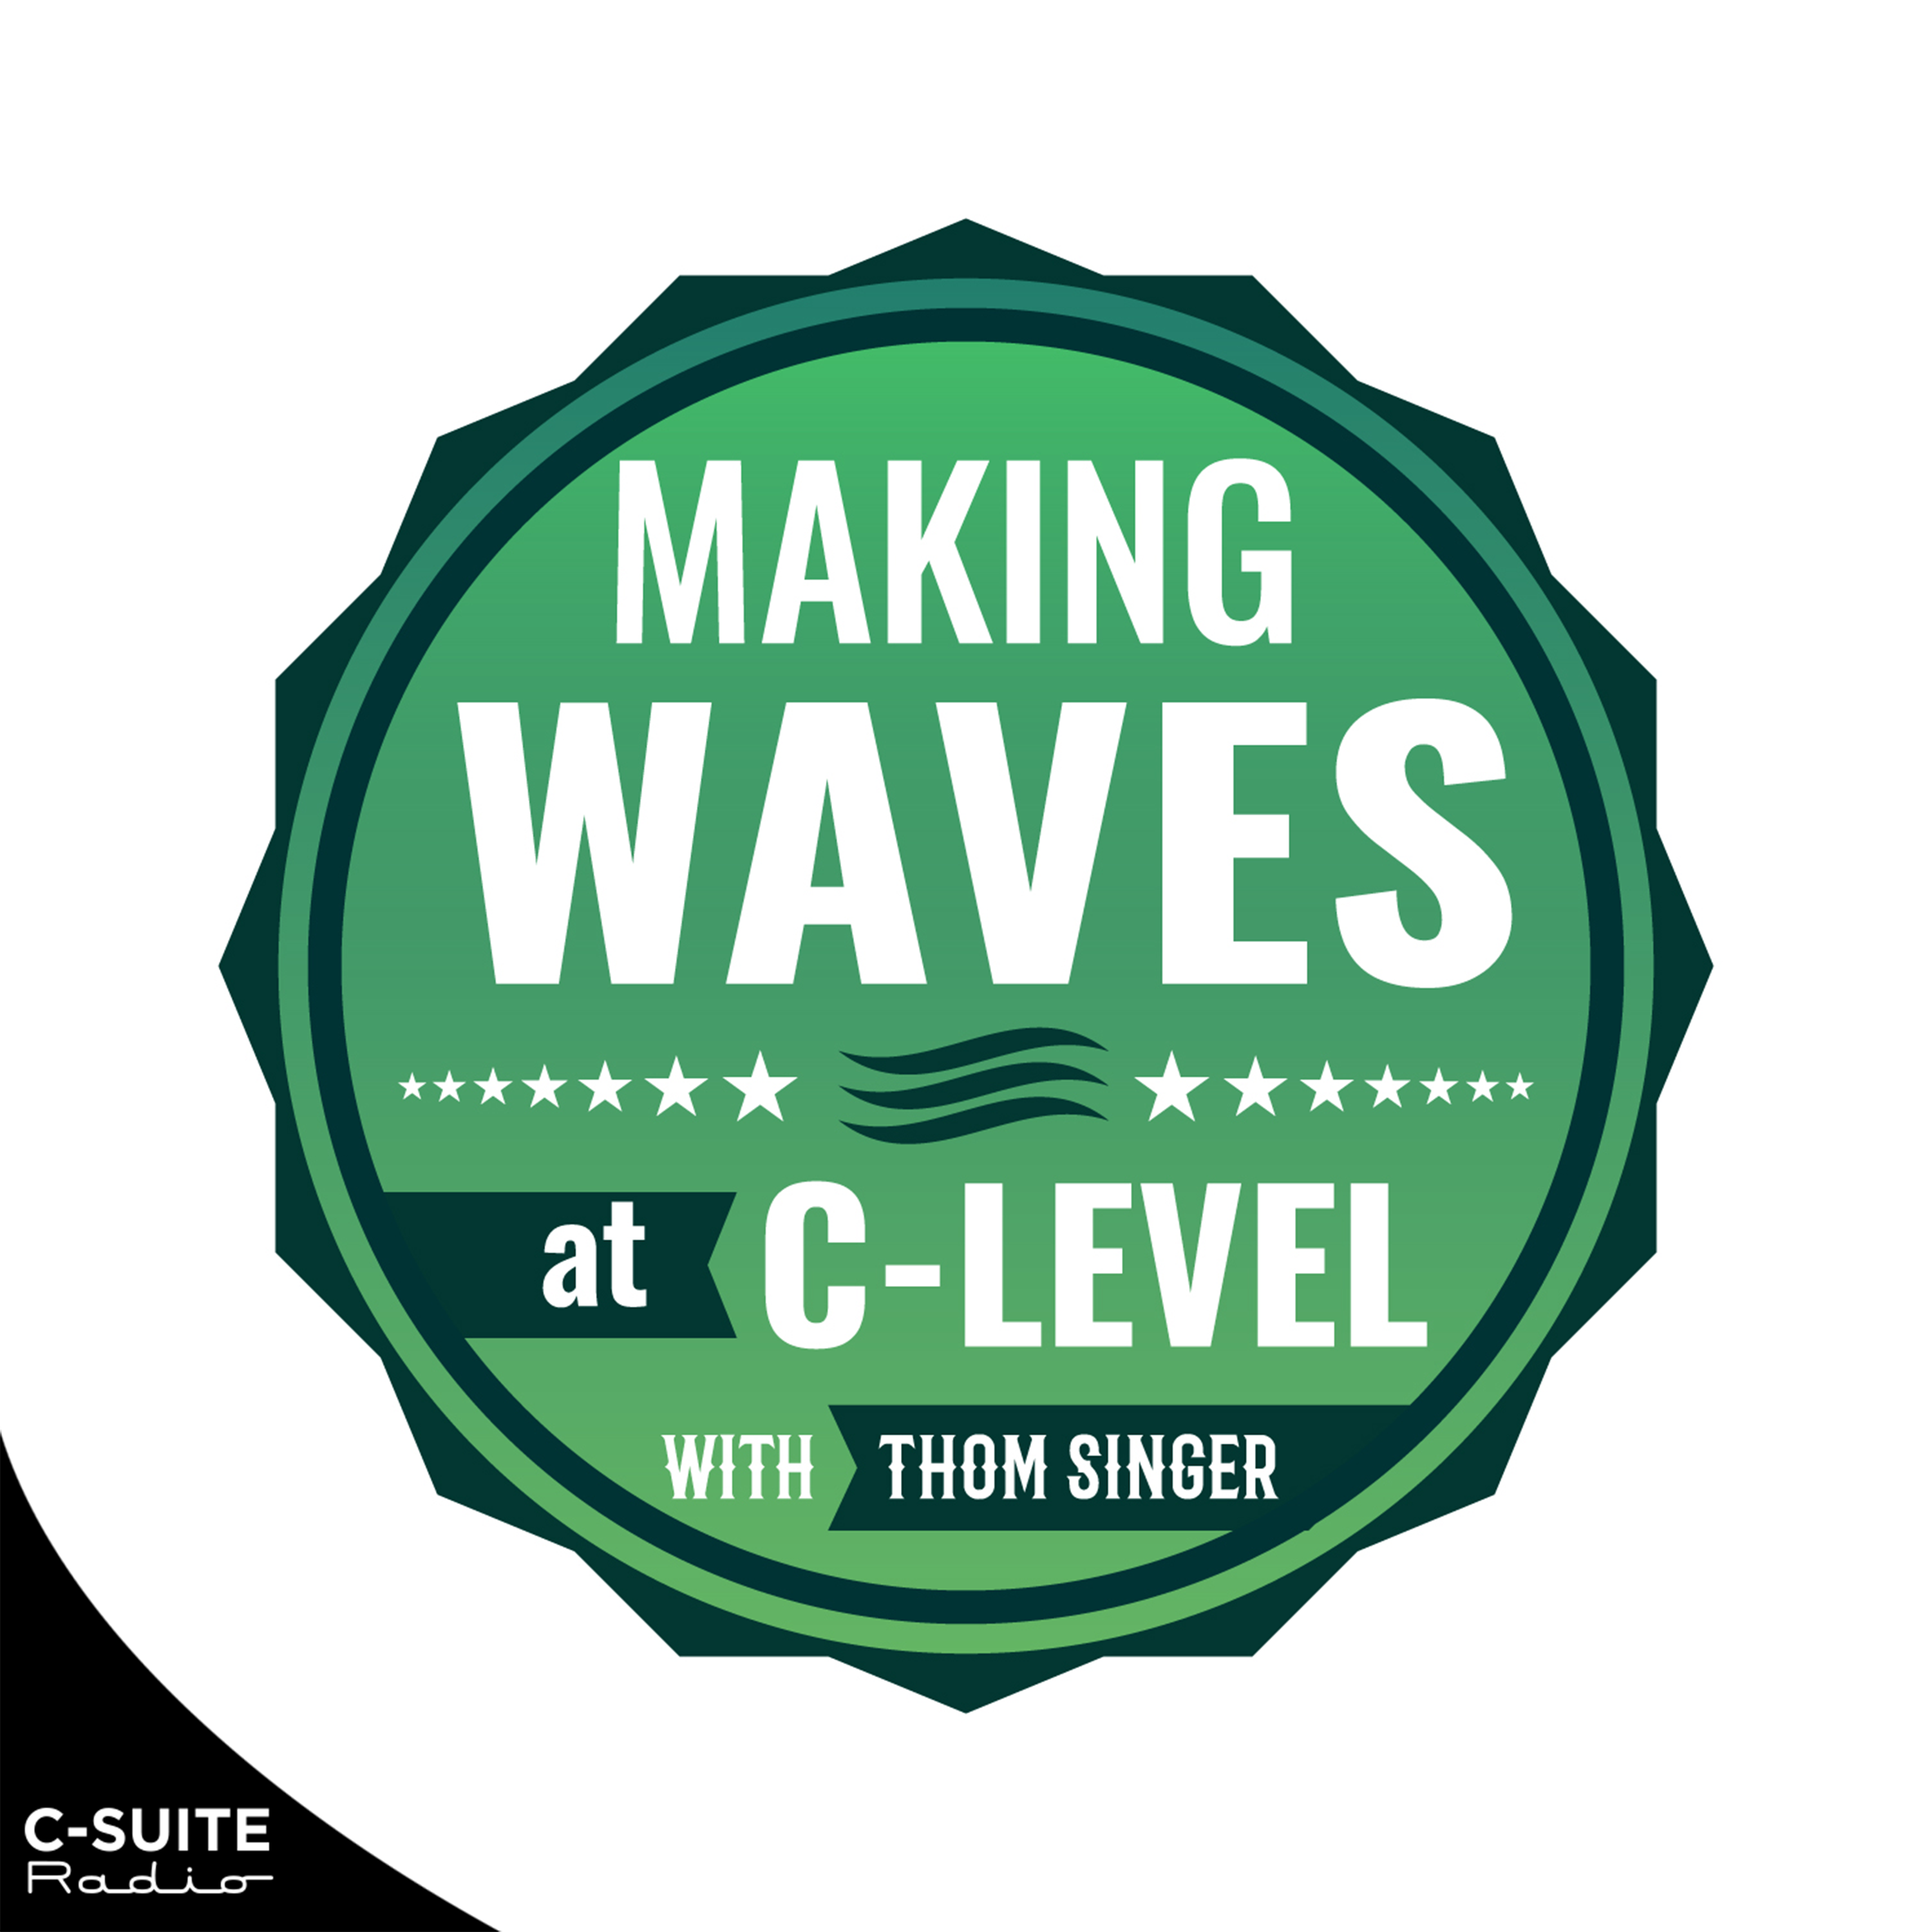 Making Waves at C-Level